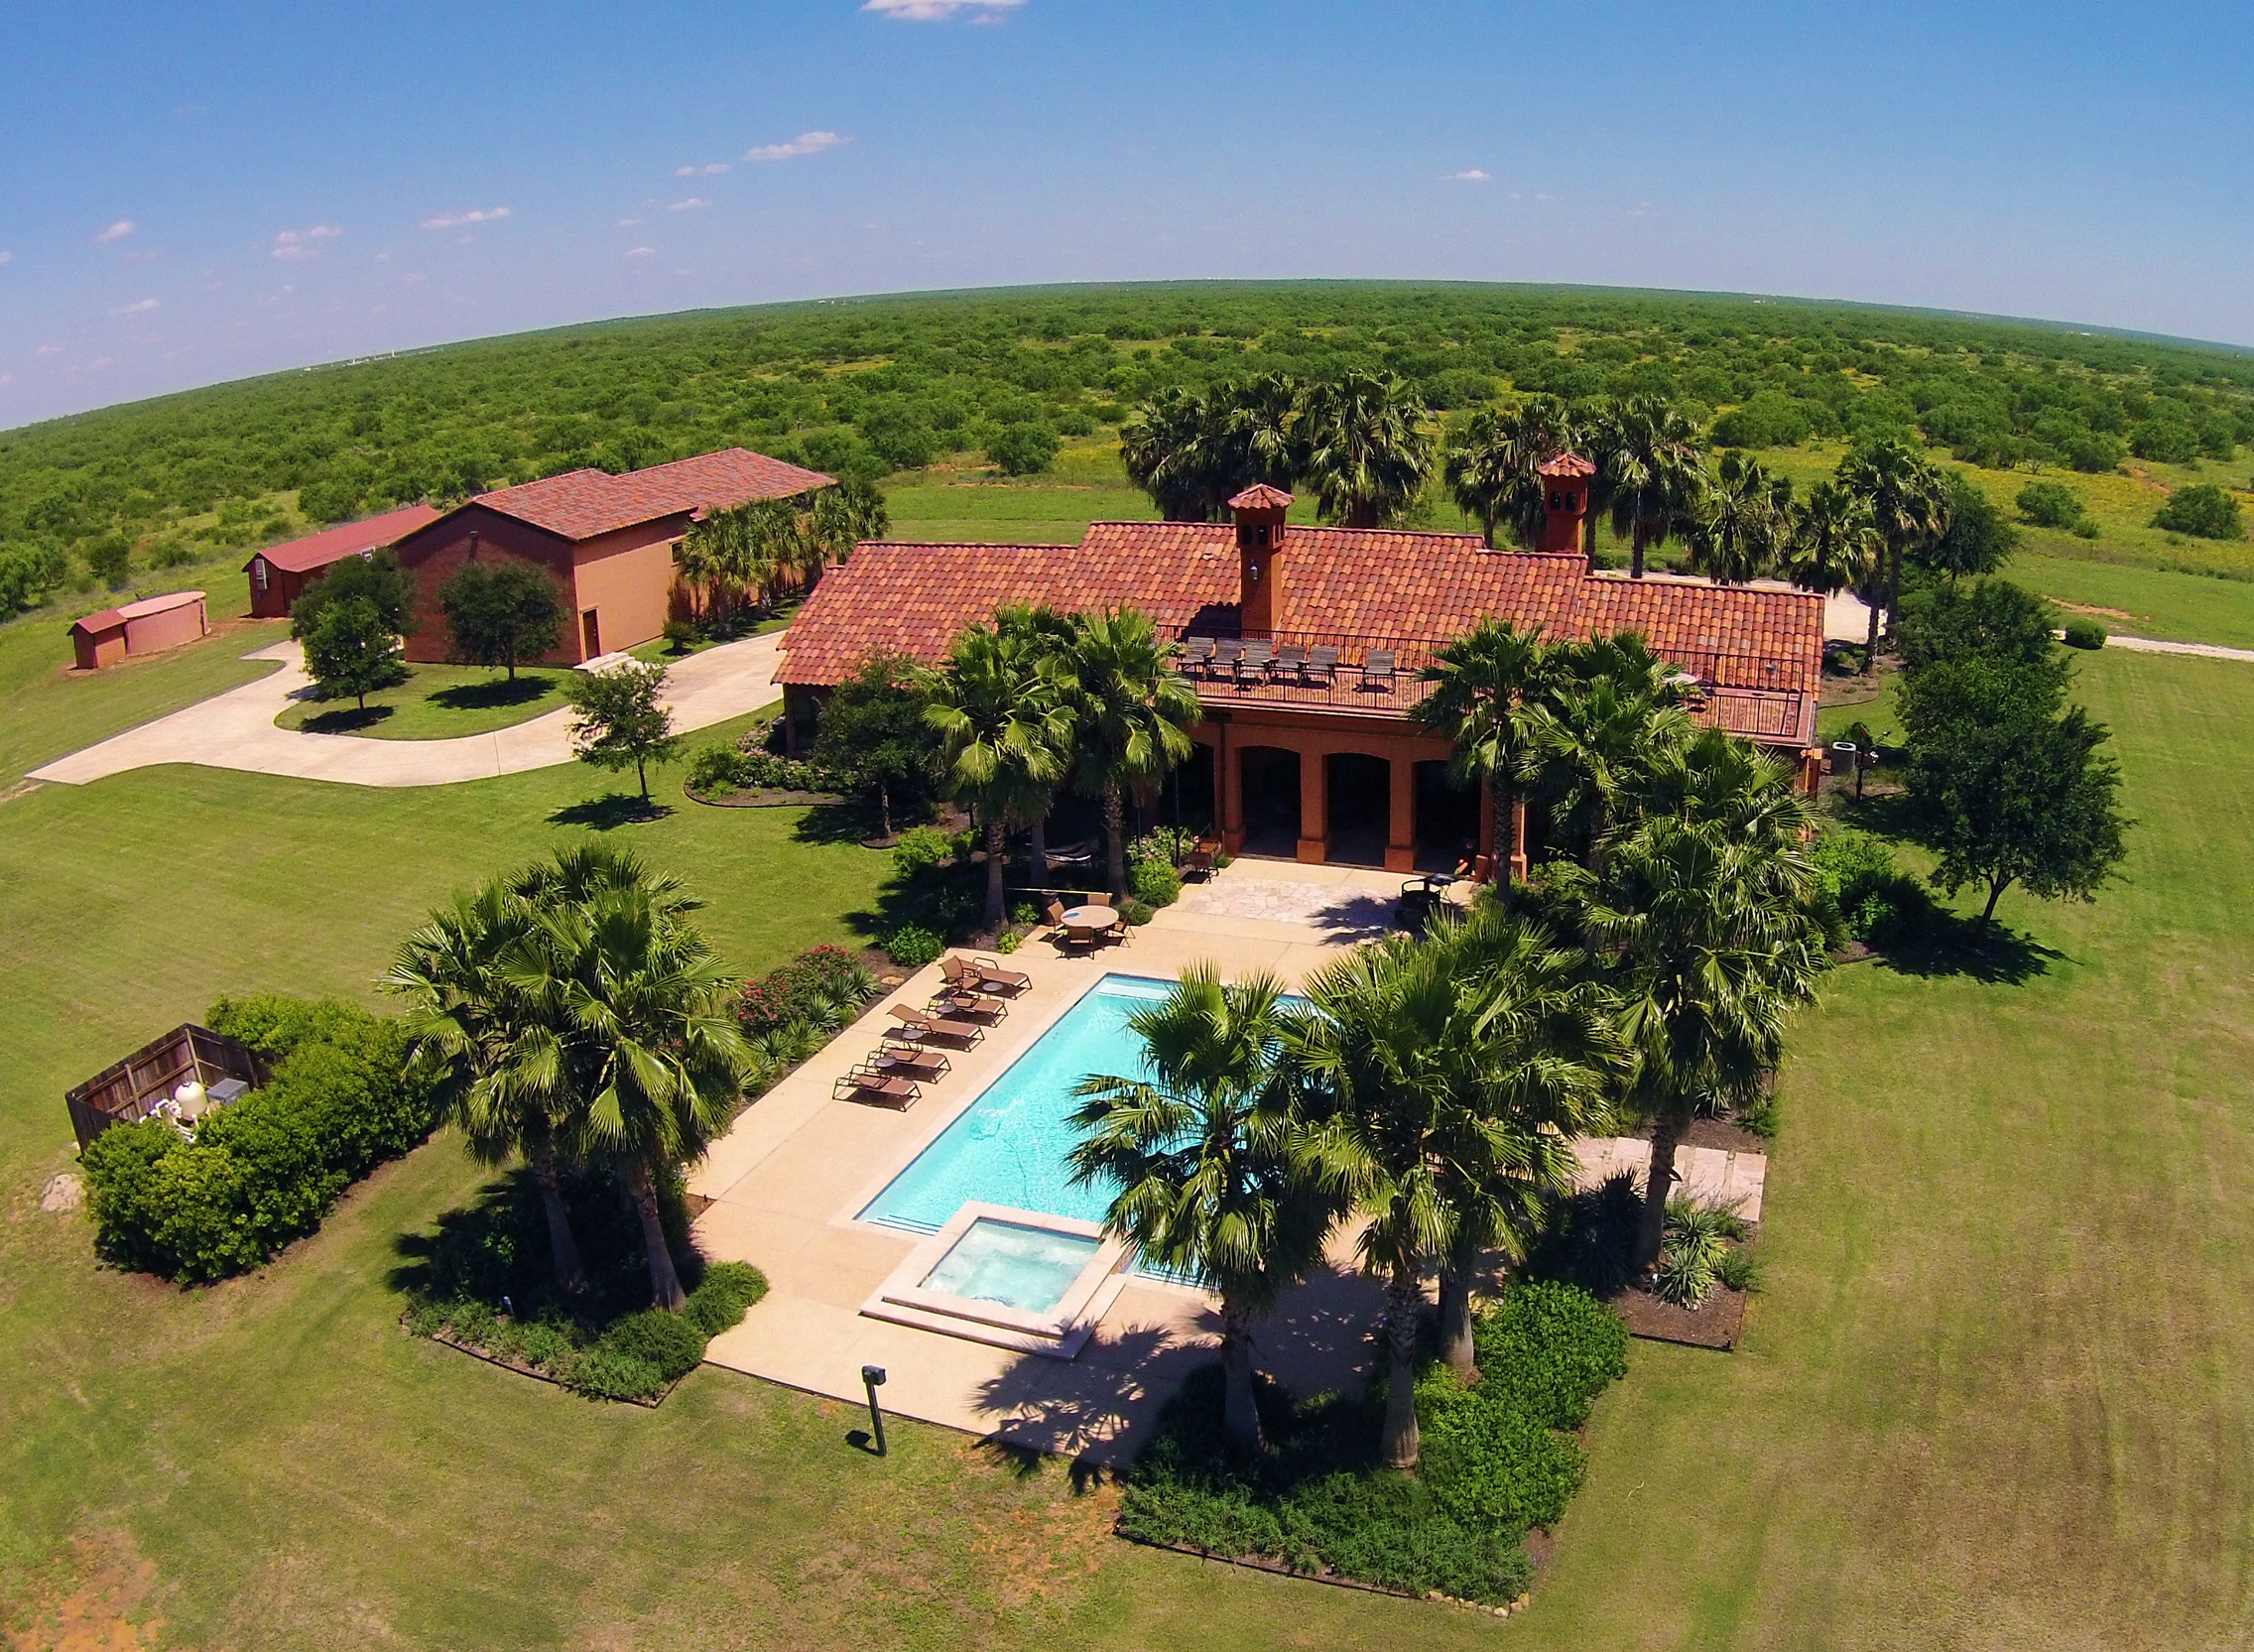 Farmhouse For Sale In Texas 2 721 Acres La Corona Ranch Dullnig Ranches